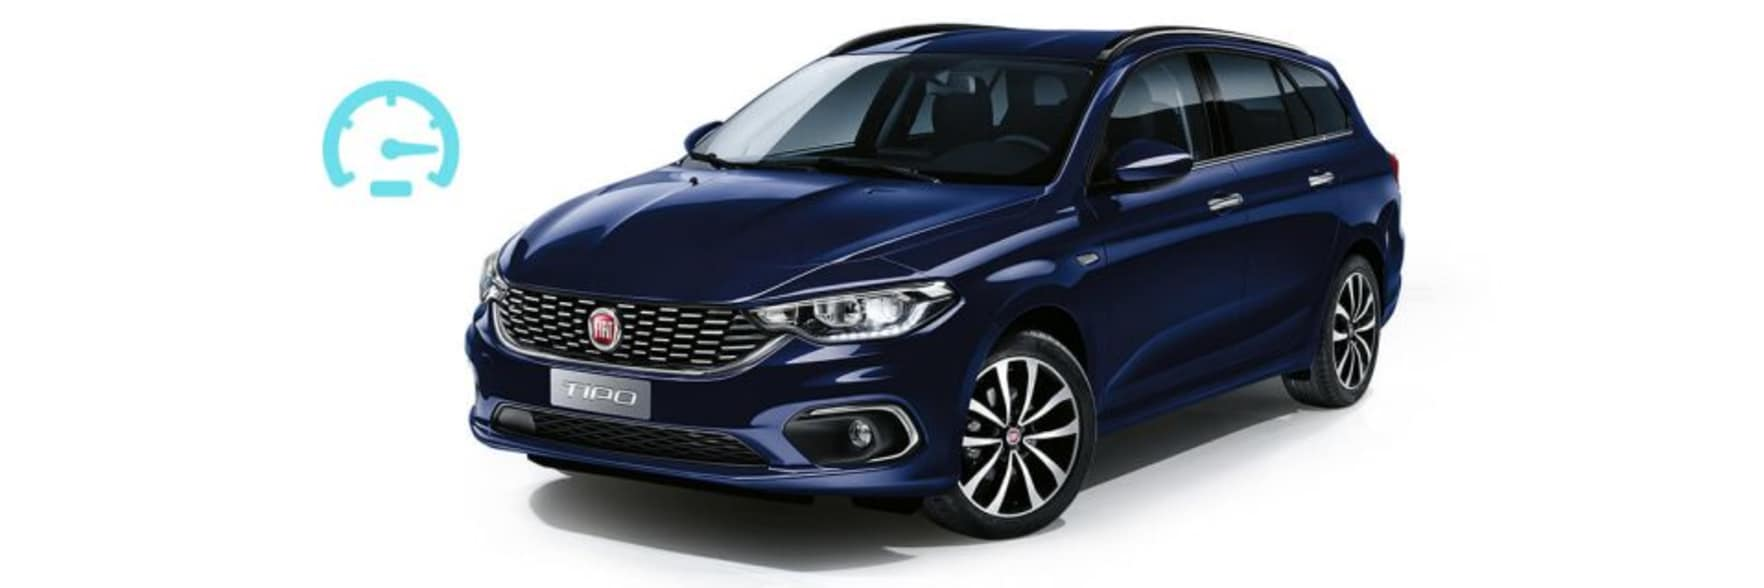 Fiat Tipo SW: Speed Limiter